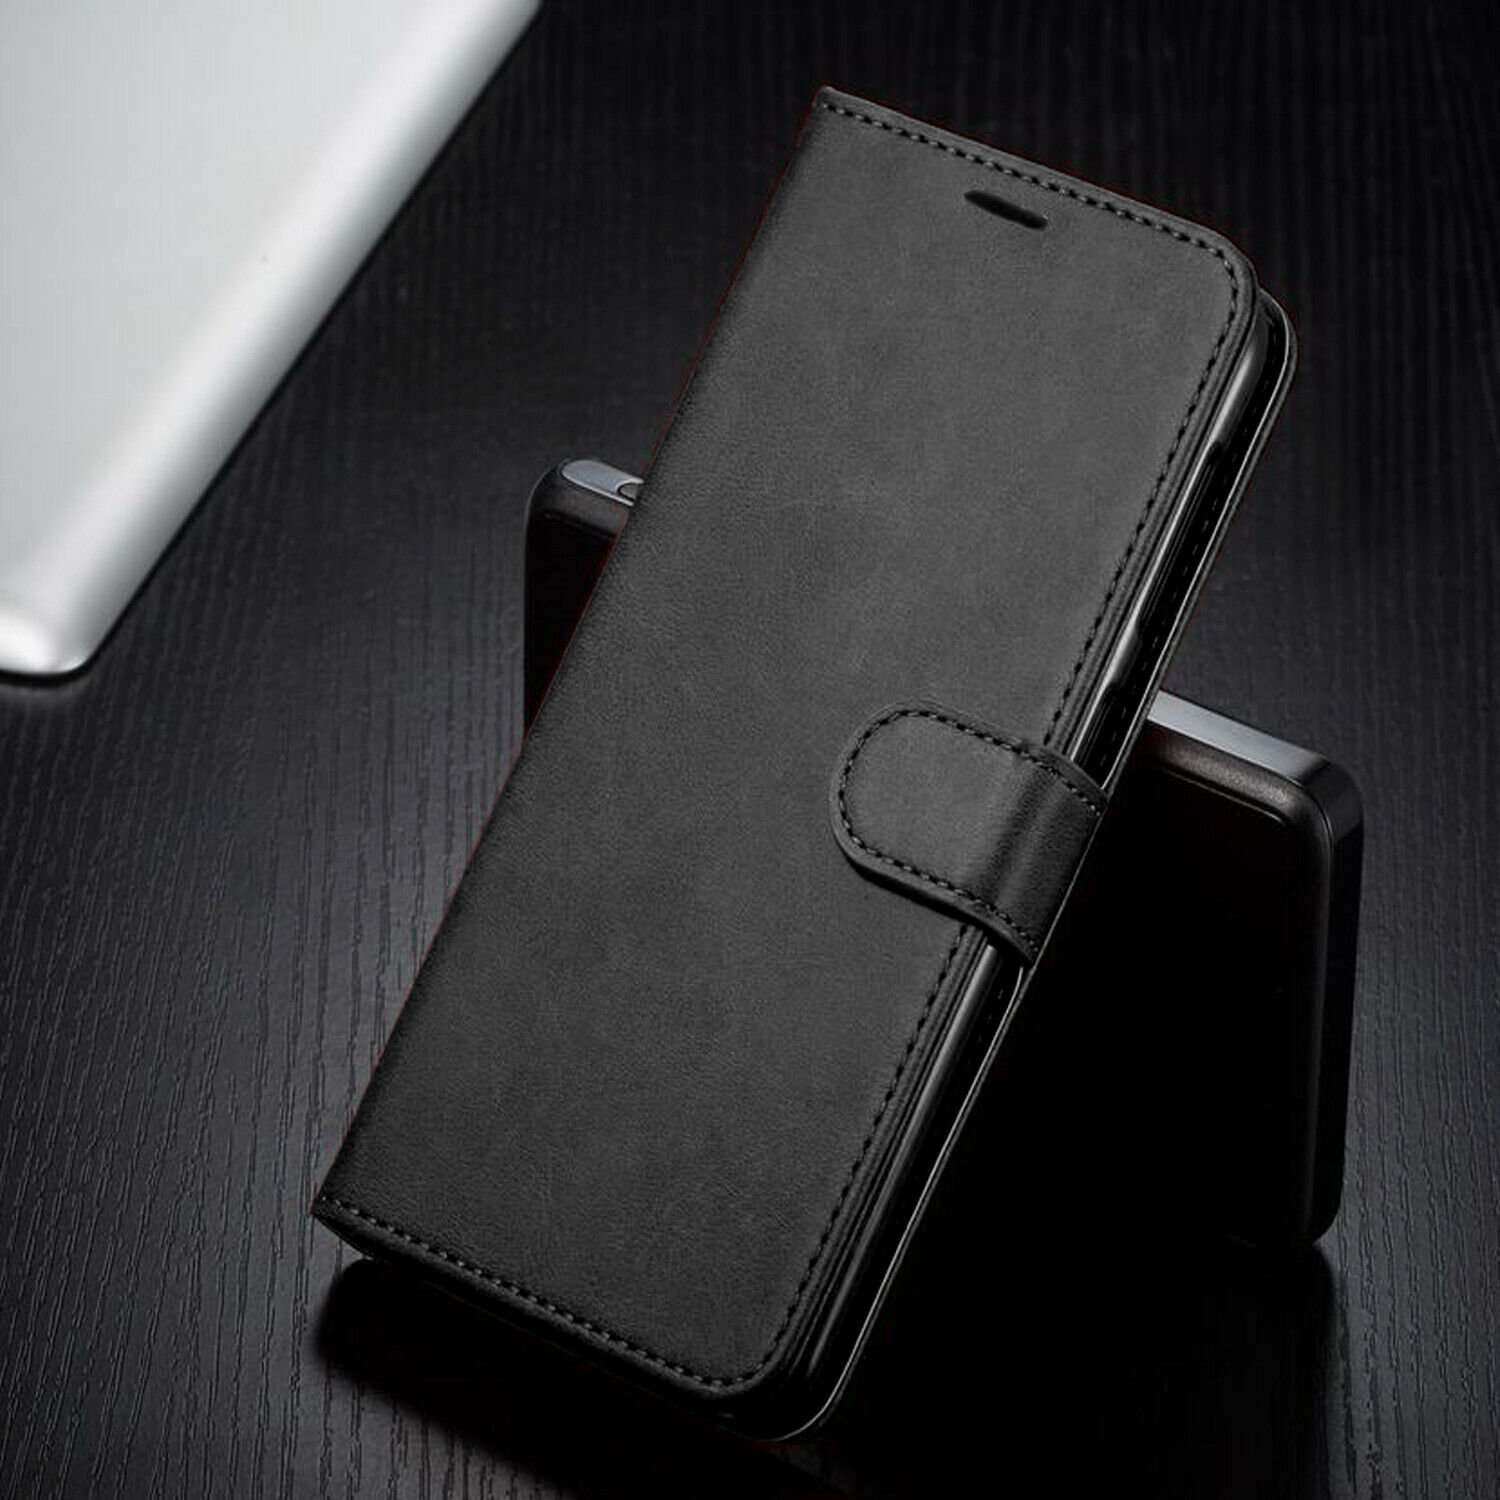 thumbnail 8 - For iPhone 7 / 8 / 7 Plus Case, Premium Wallet Cover + Tempered Glass Protector